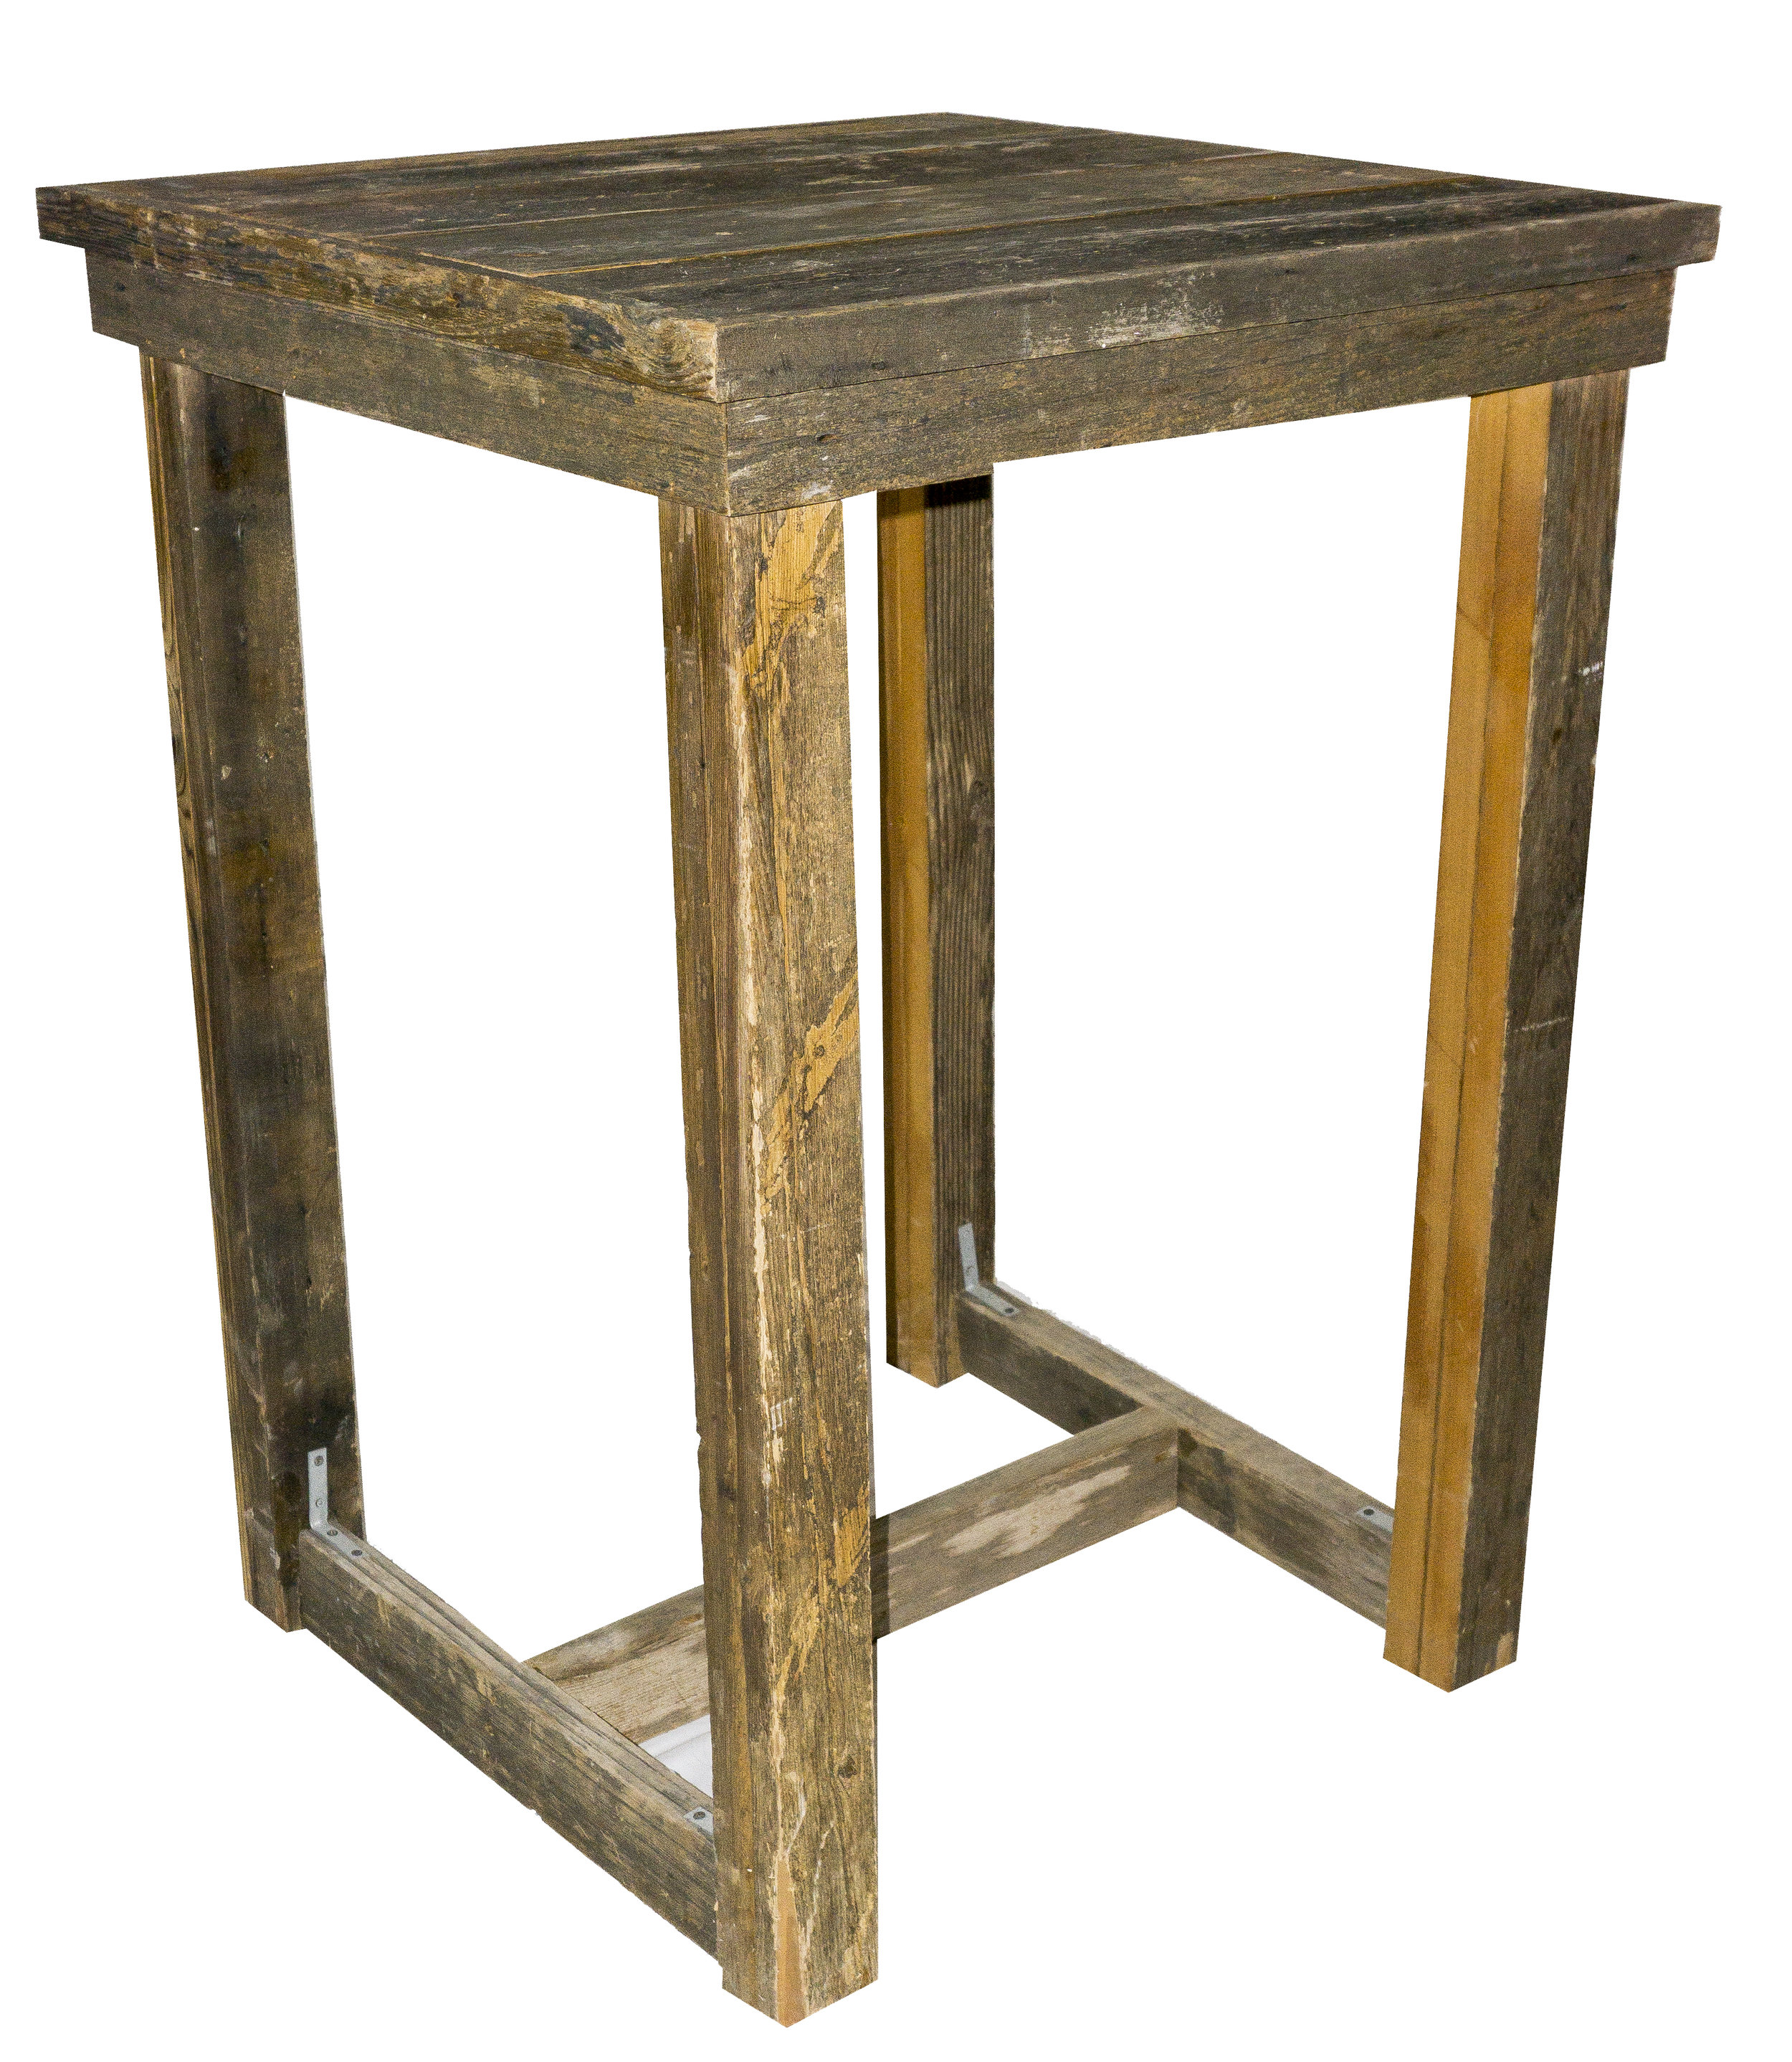 square rustic table.jpg